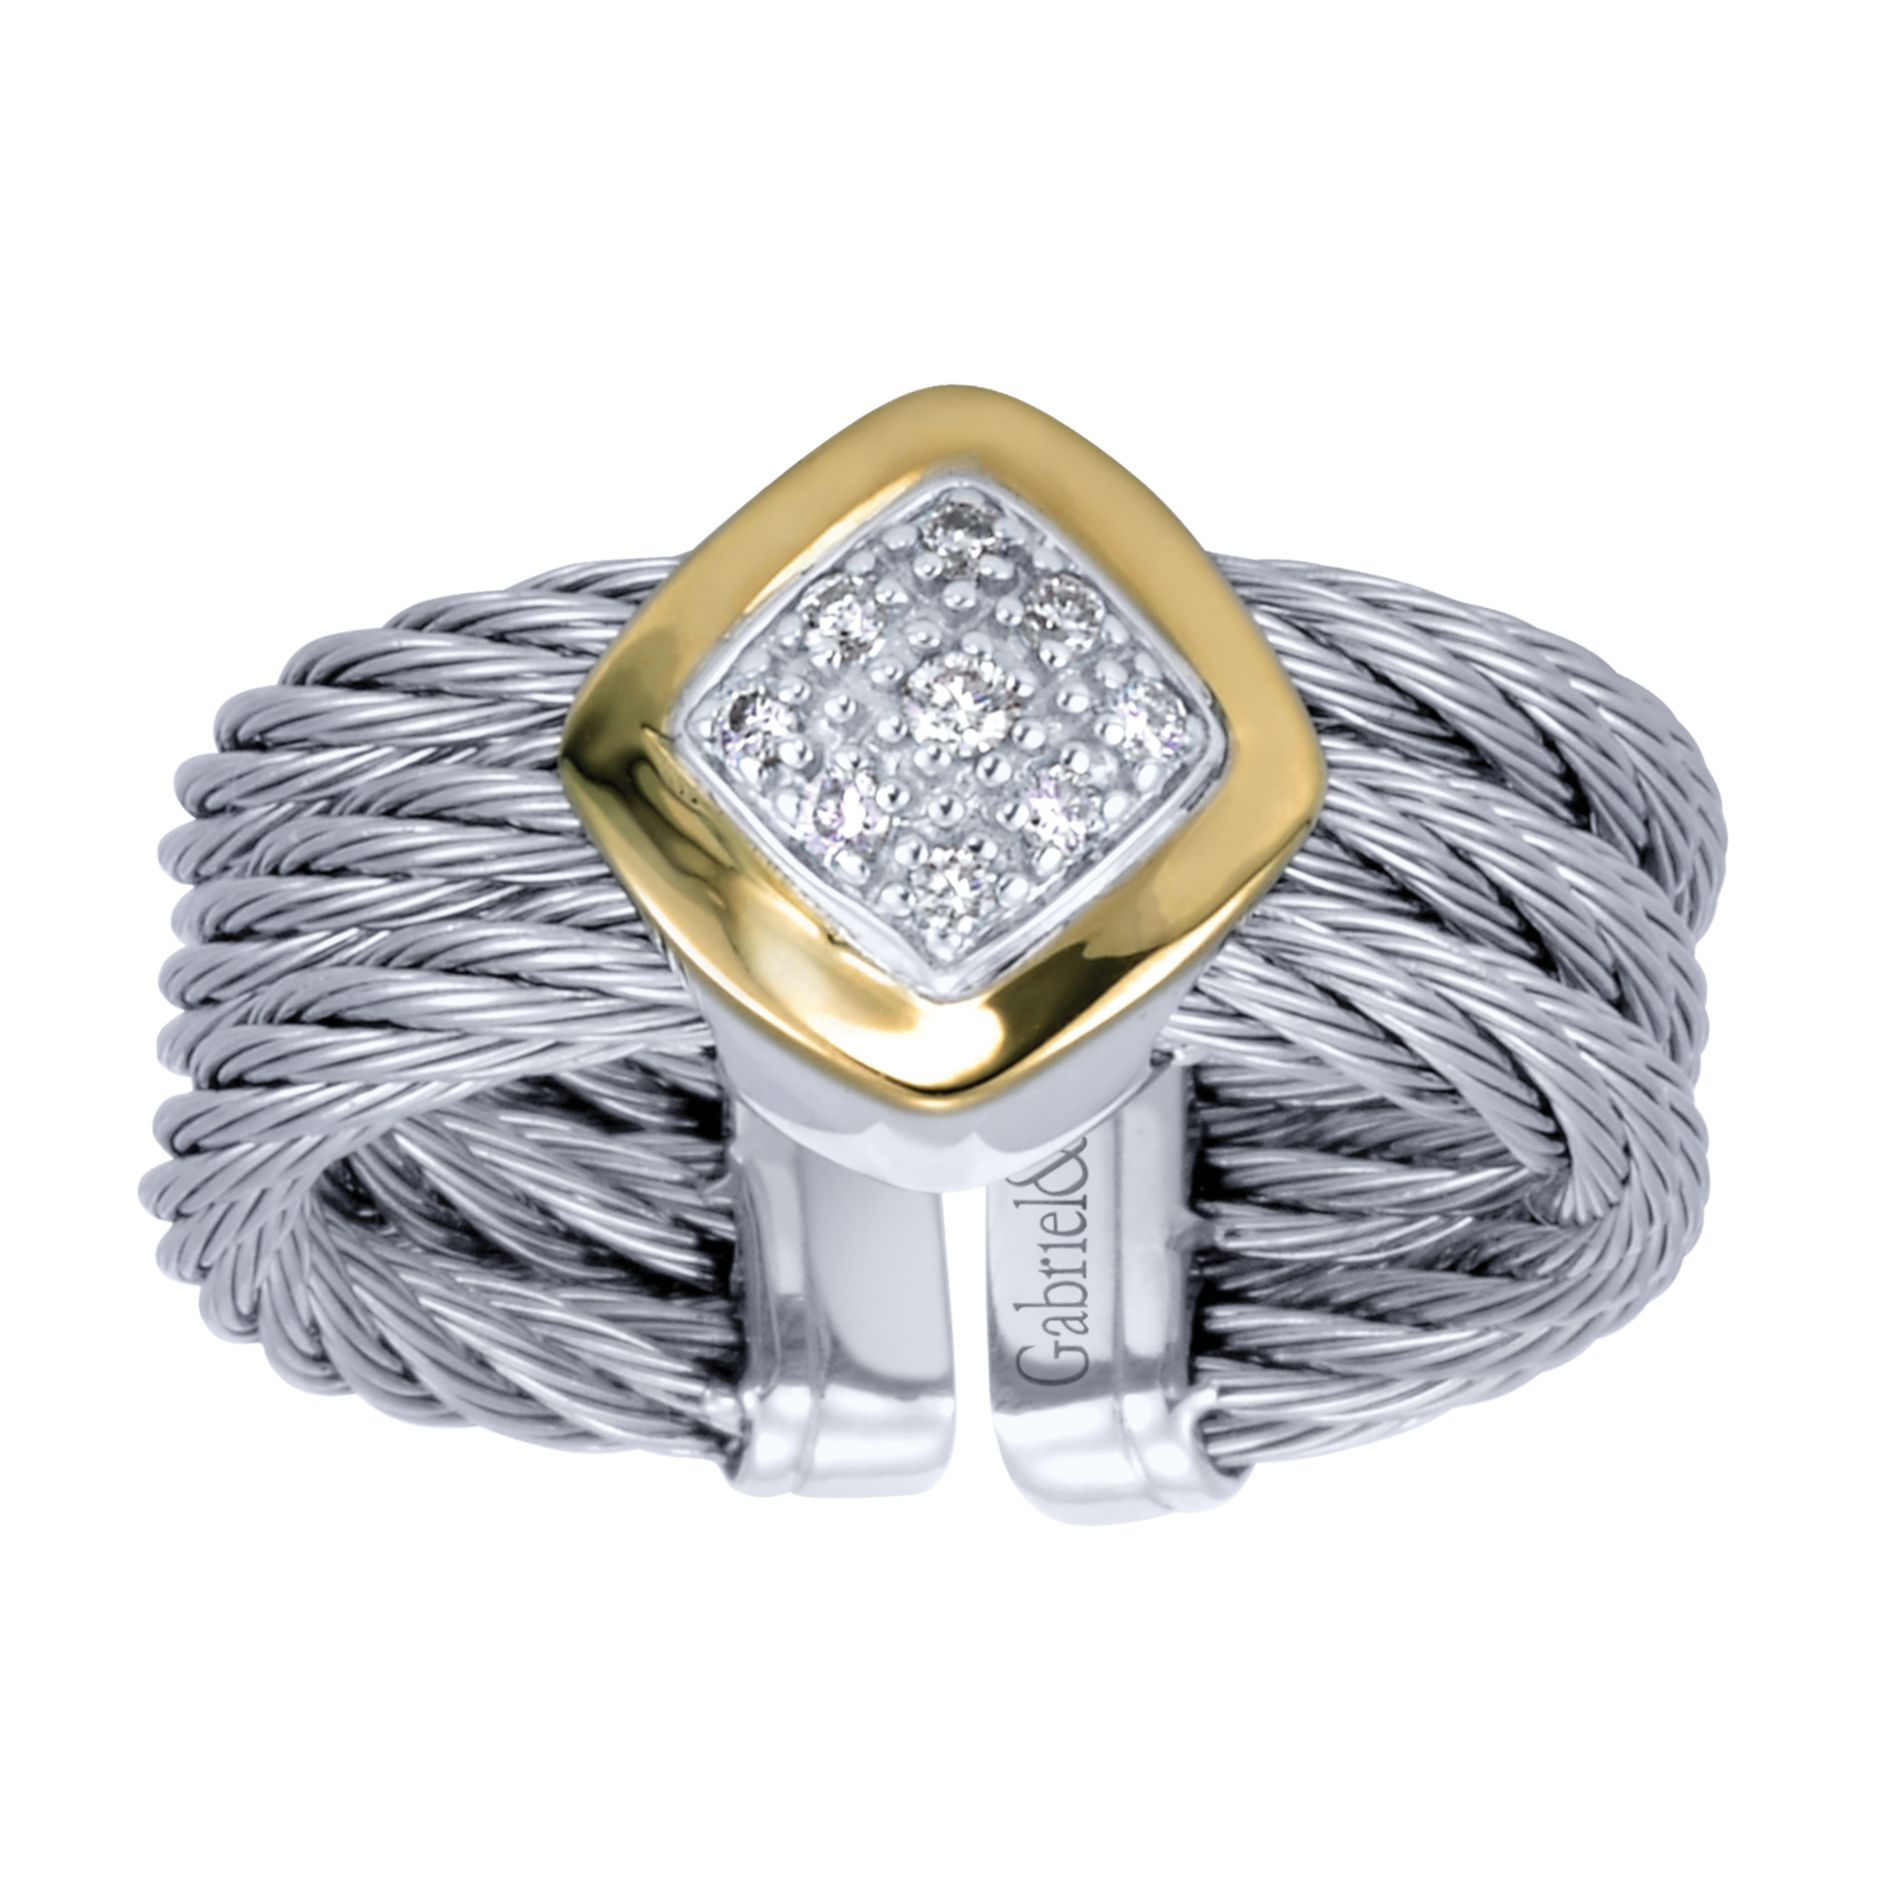 Rings - TWISTED CABLE DIAMOND LADIES RING - image #5